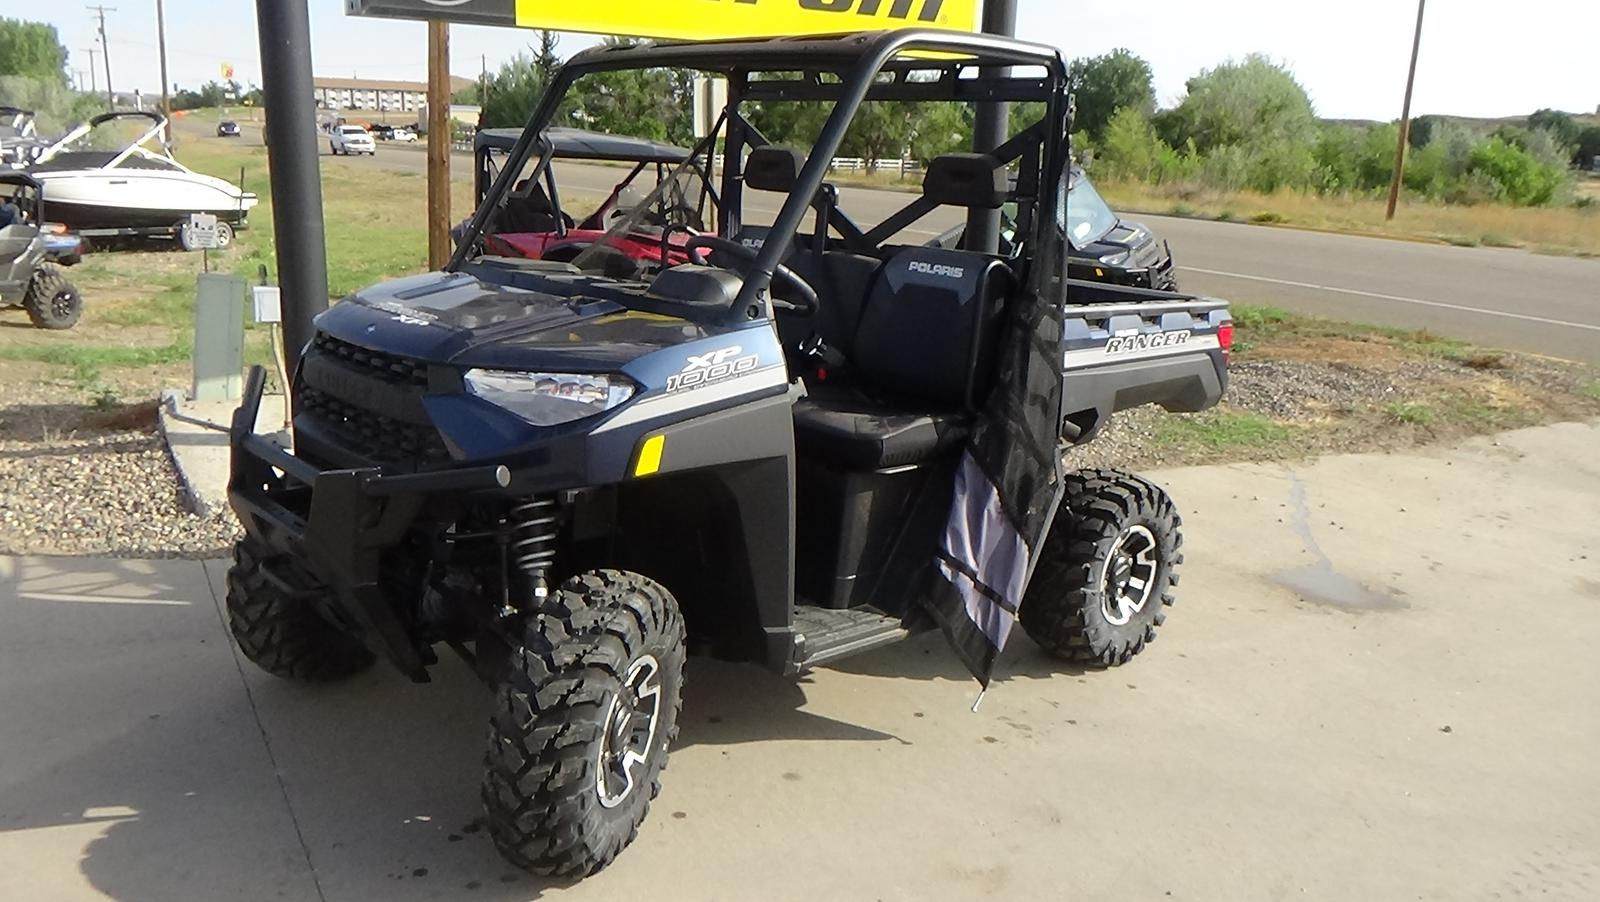 2019 polaris industries ranger xp� 1000 eps premium- steel blue